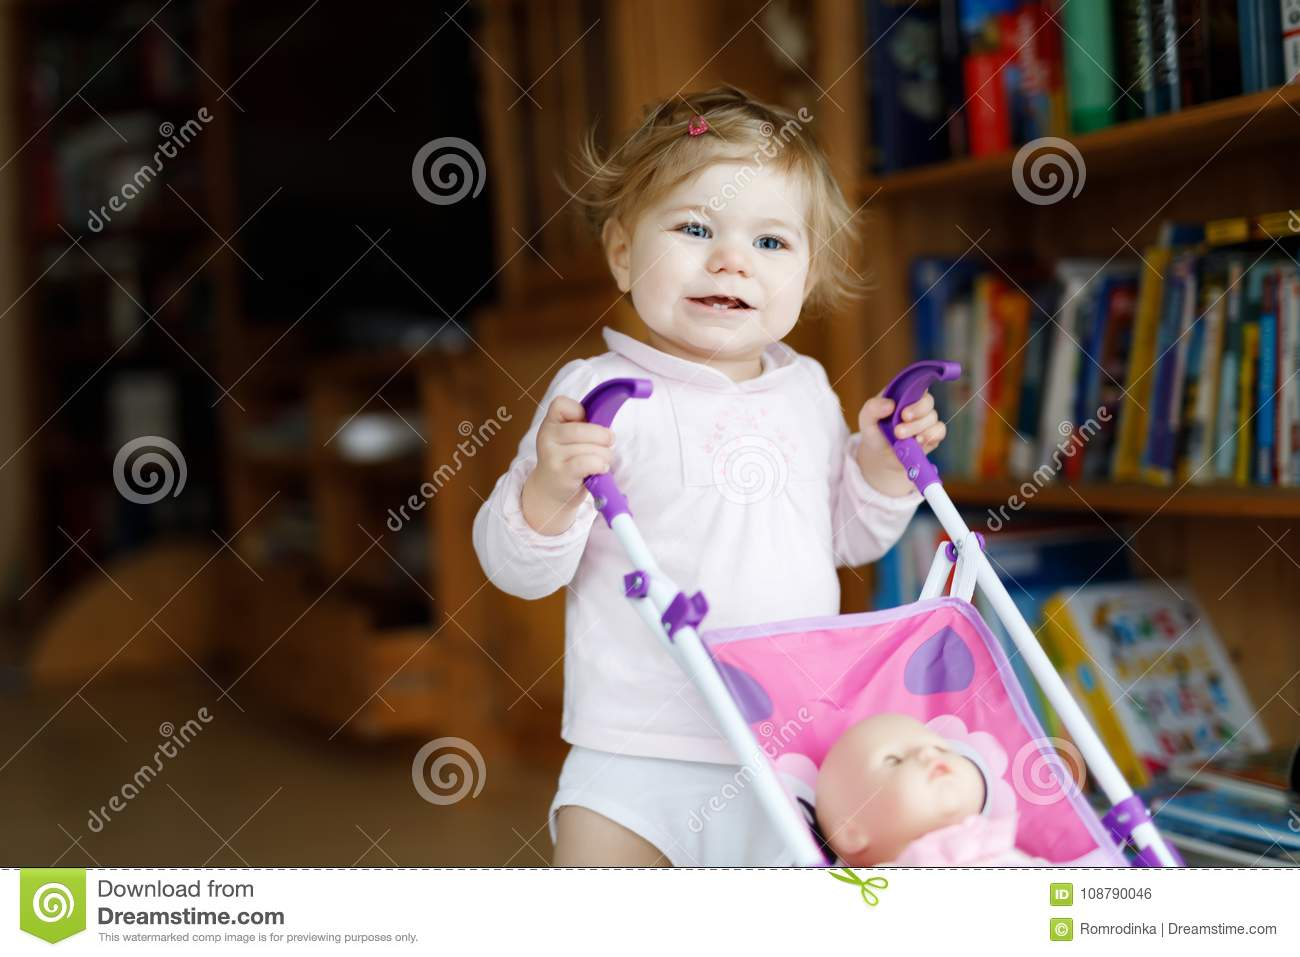 6a1b7422e Cute Adorable Baby Girl Making First Steps With Doll Carriage. Stock ...